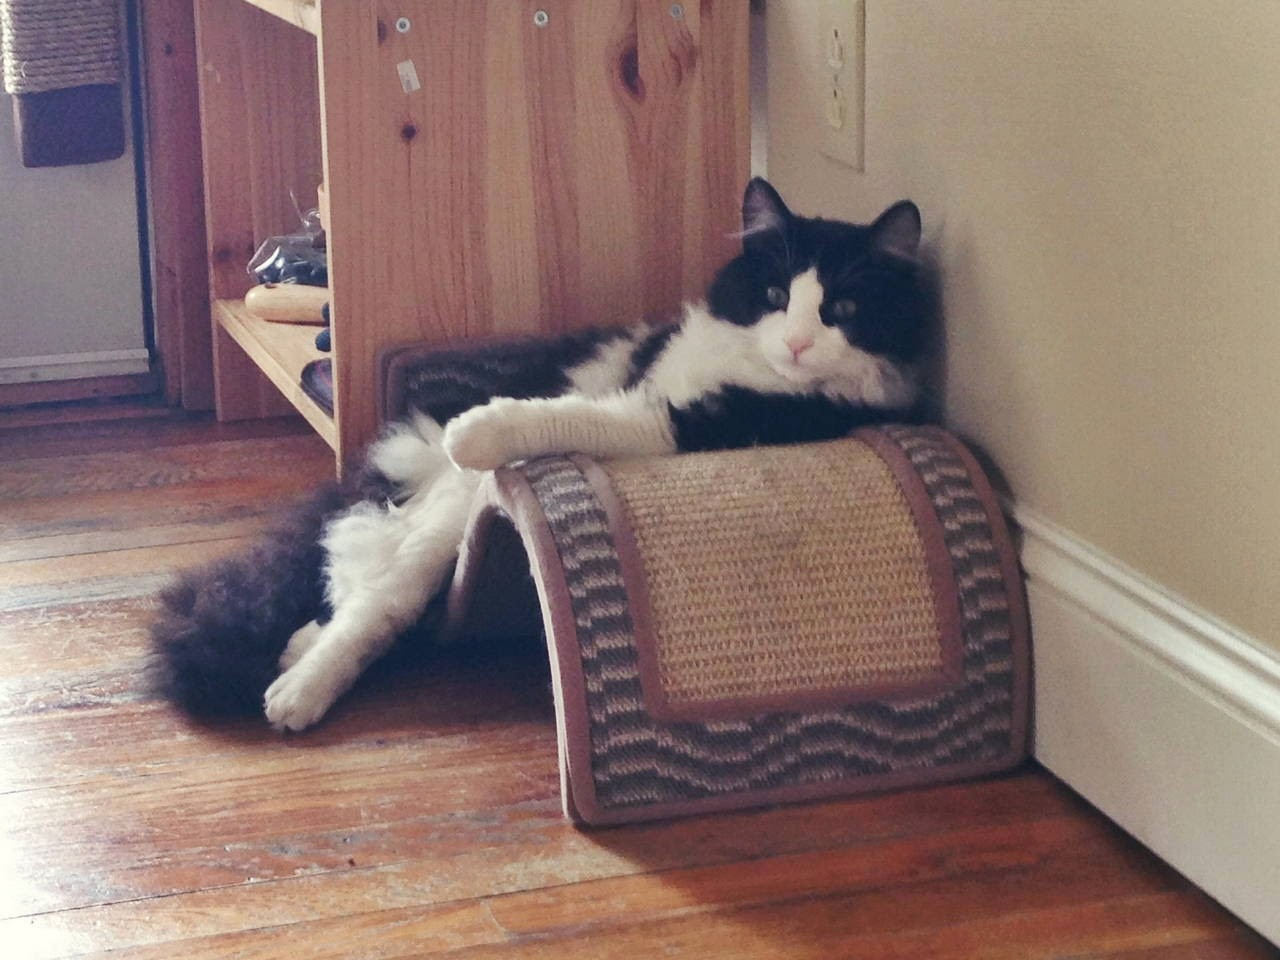 Funny cats - part 99 (40 pics + 10 gifs), cat pictures, cat sits on scratch post